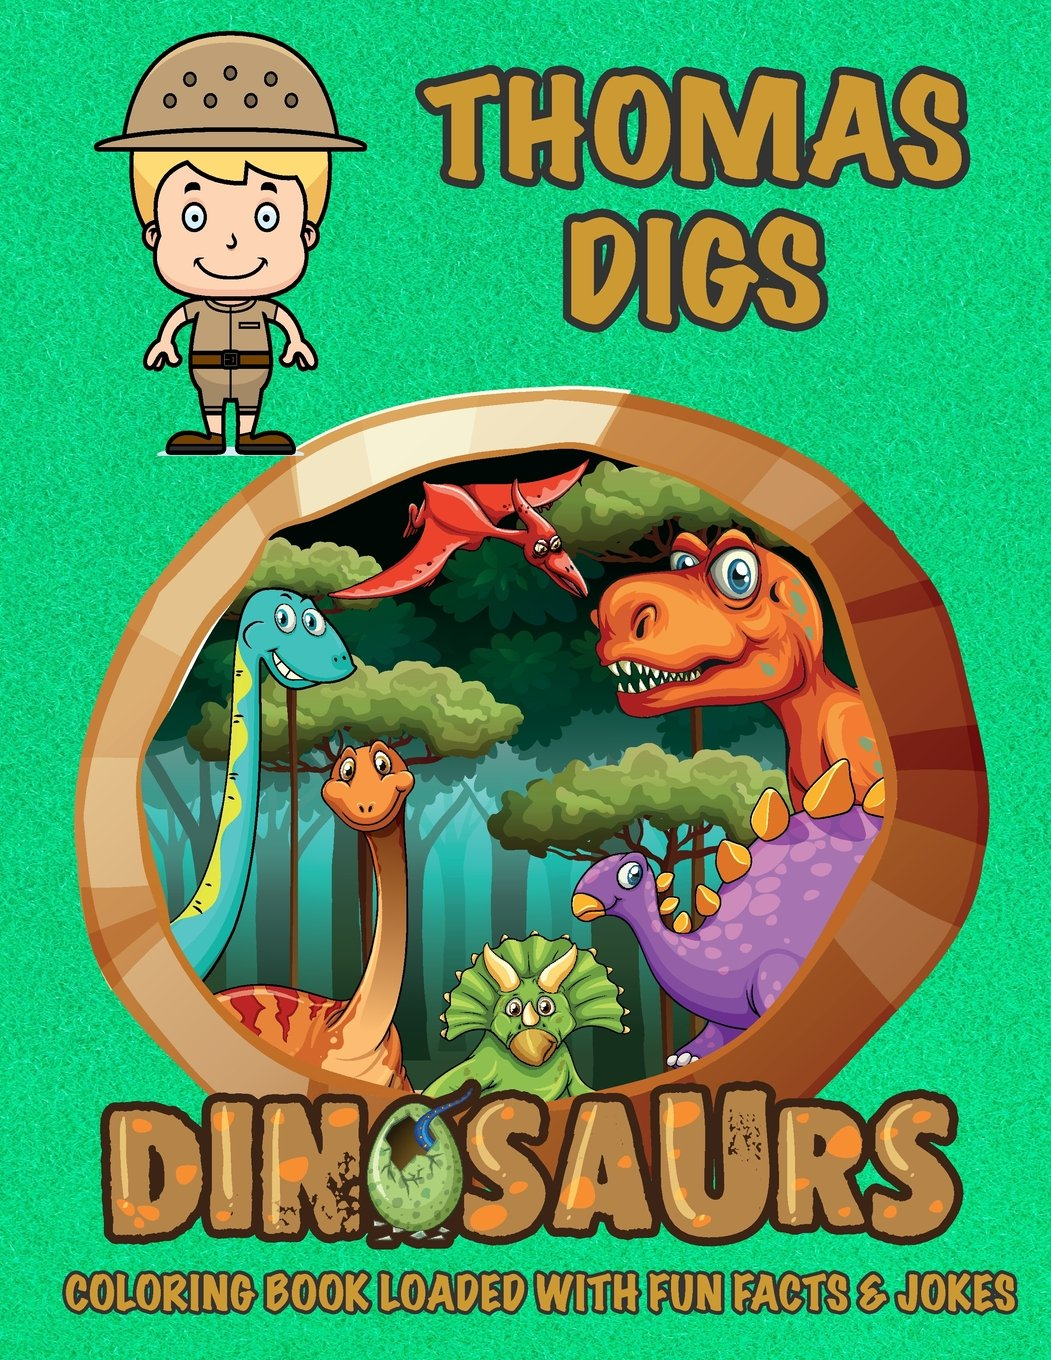 Thomas Digs Dinosaurs Coloring Book Loaded With Fun Facts & Jokes (Personalized Books for Children) pdf